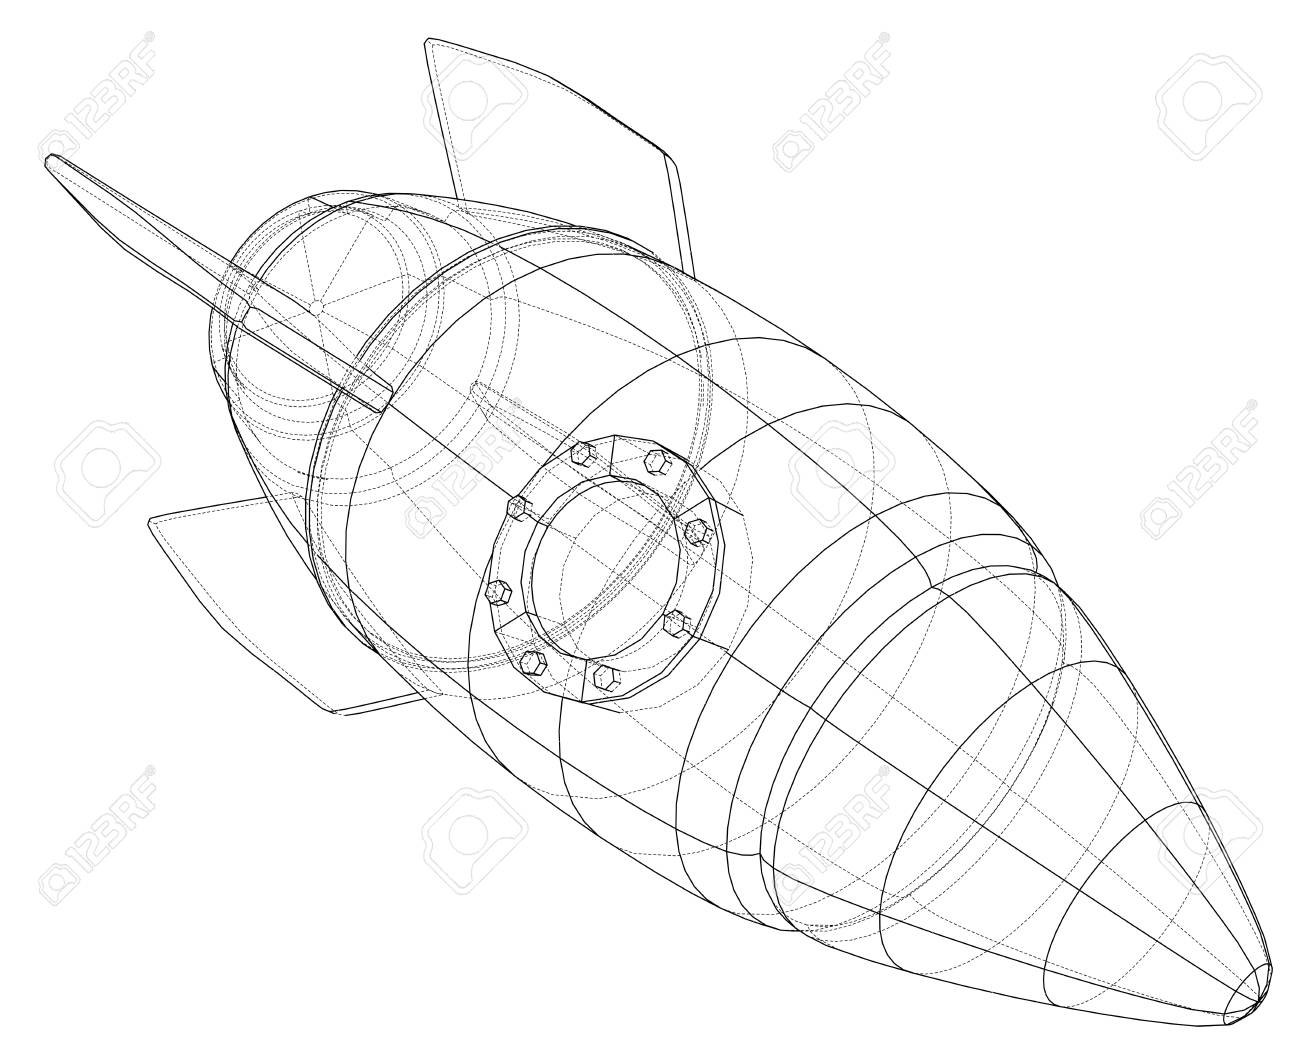 rocket ship diagram 1978 ct70 wiring 3d sketch vector royalty free cliparts vectors and stock 98100770